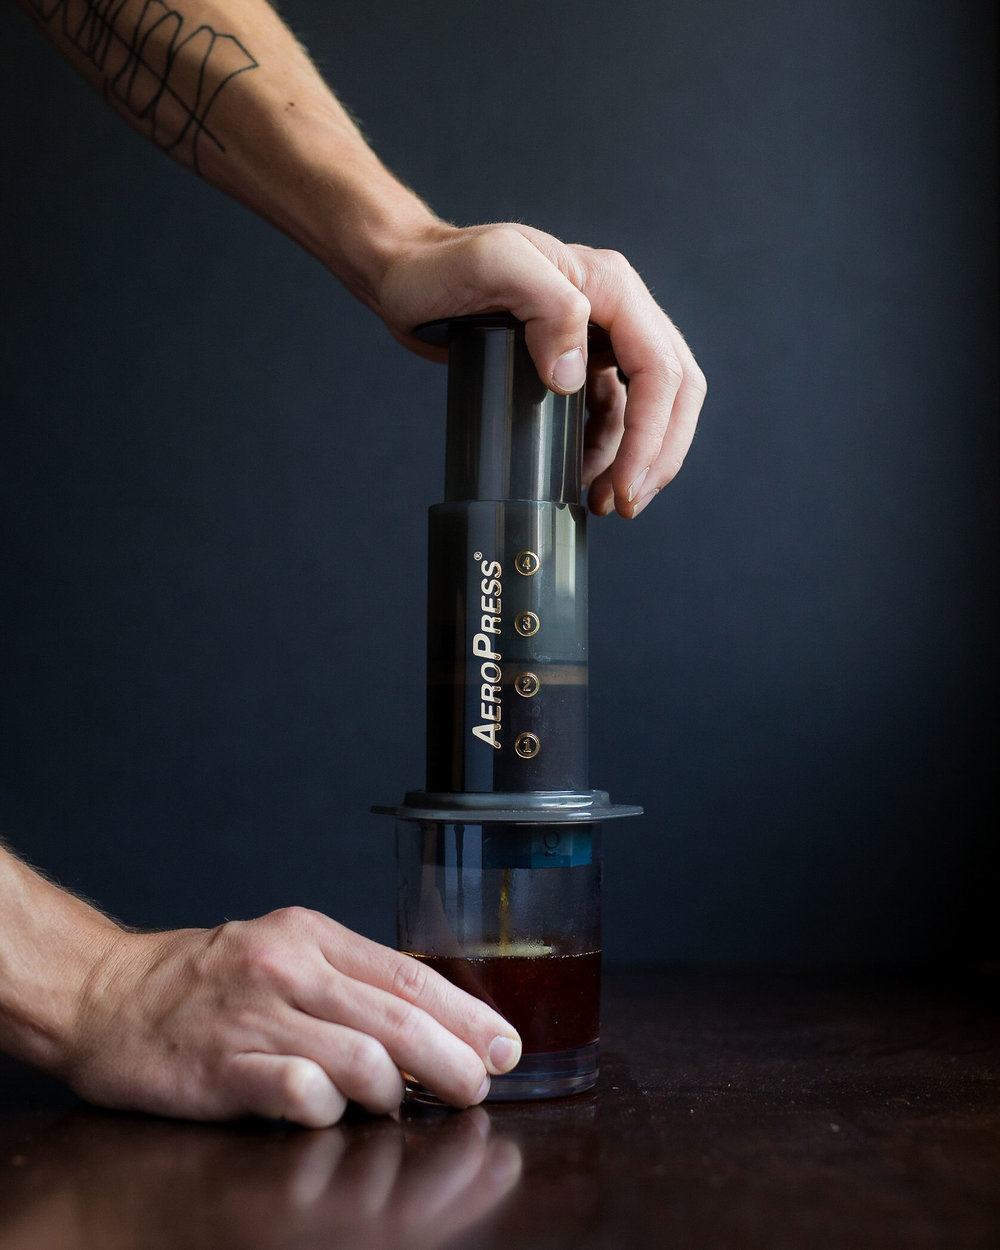 Plunge until you hear the Aeropress hiss